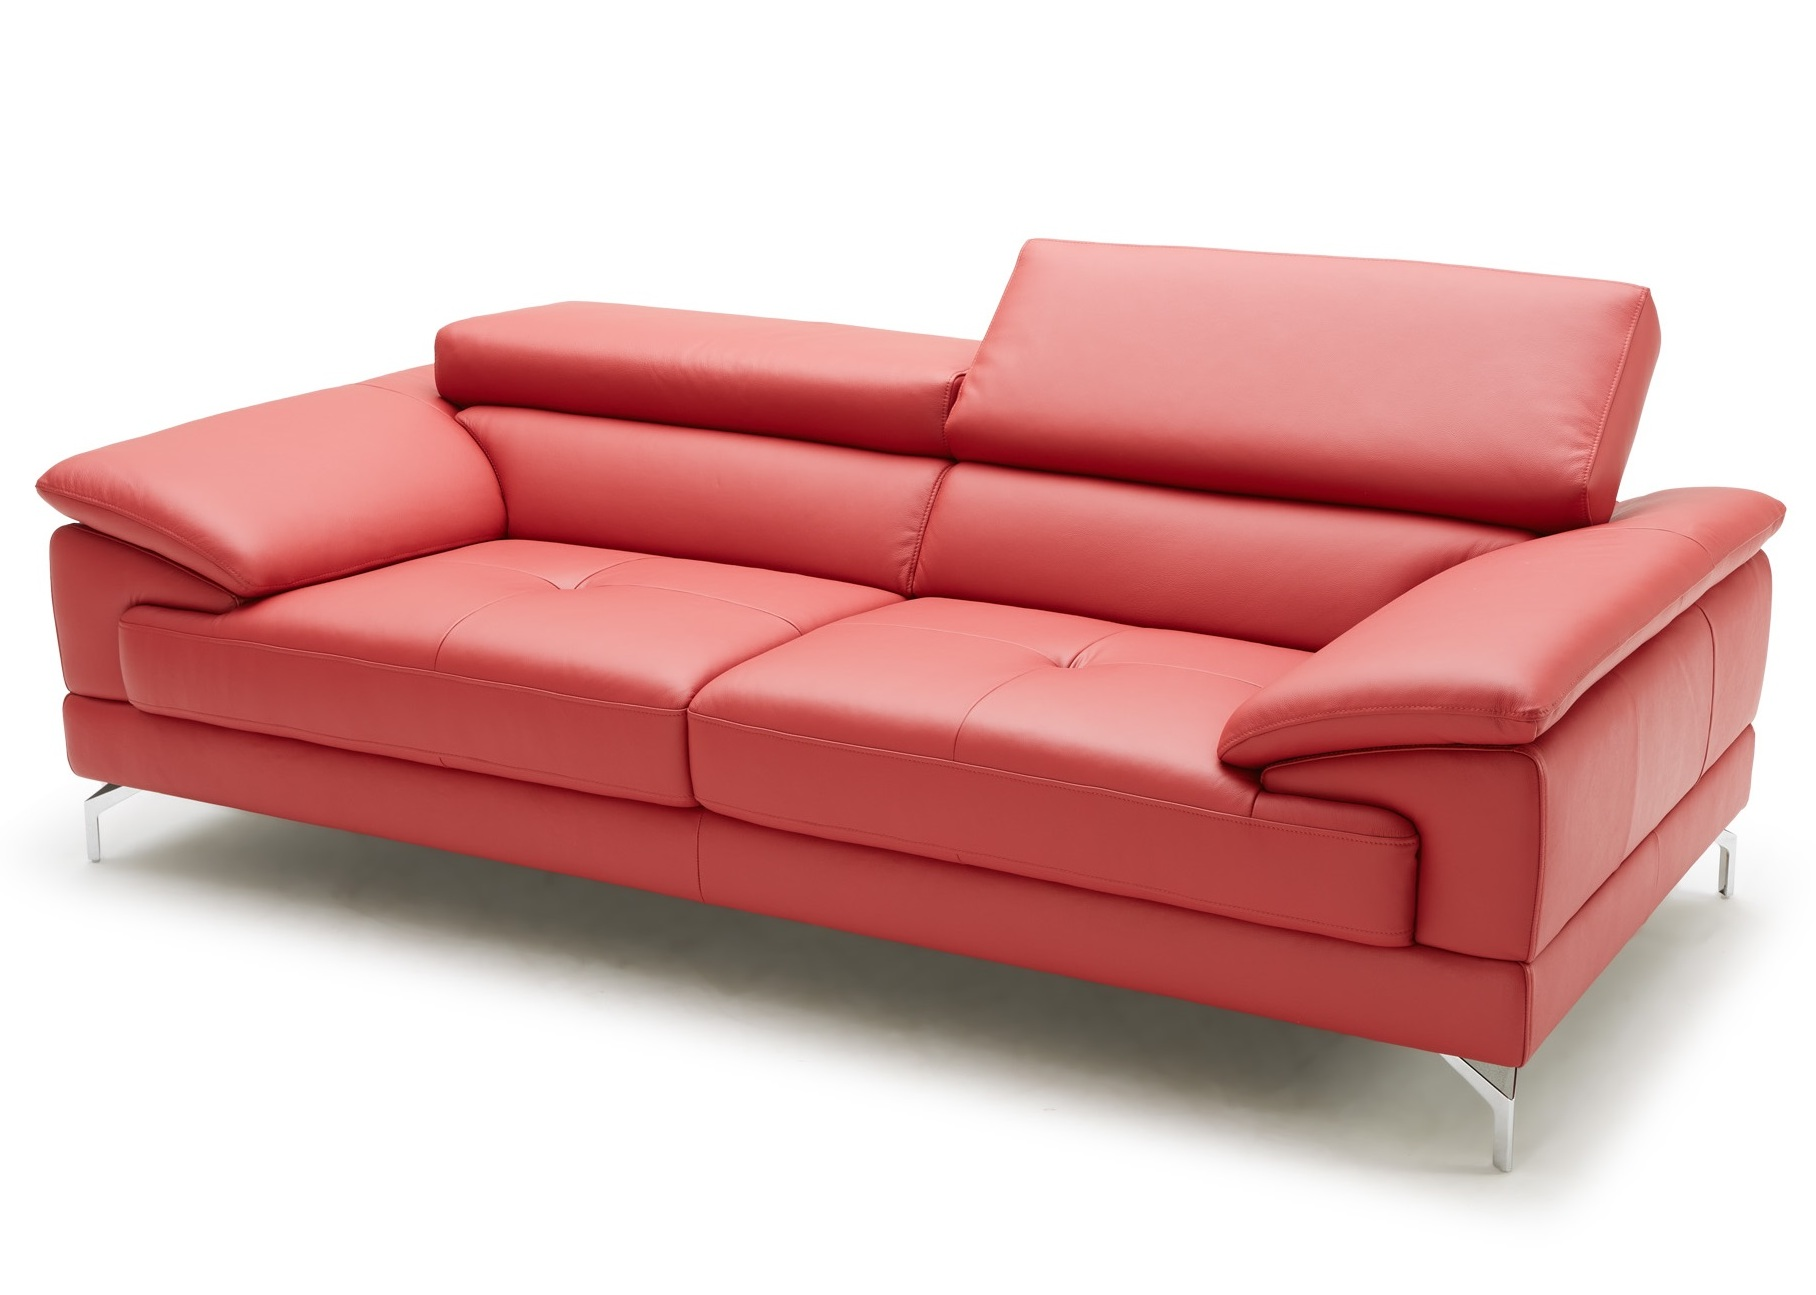 Sleek And Stylish Sofa In Red Leather Not Just Brown